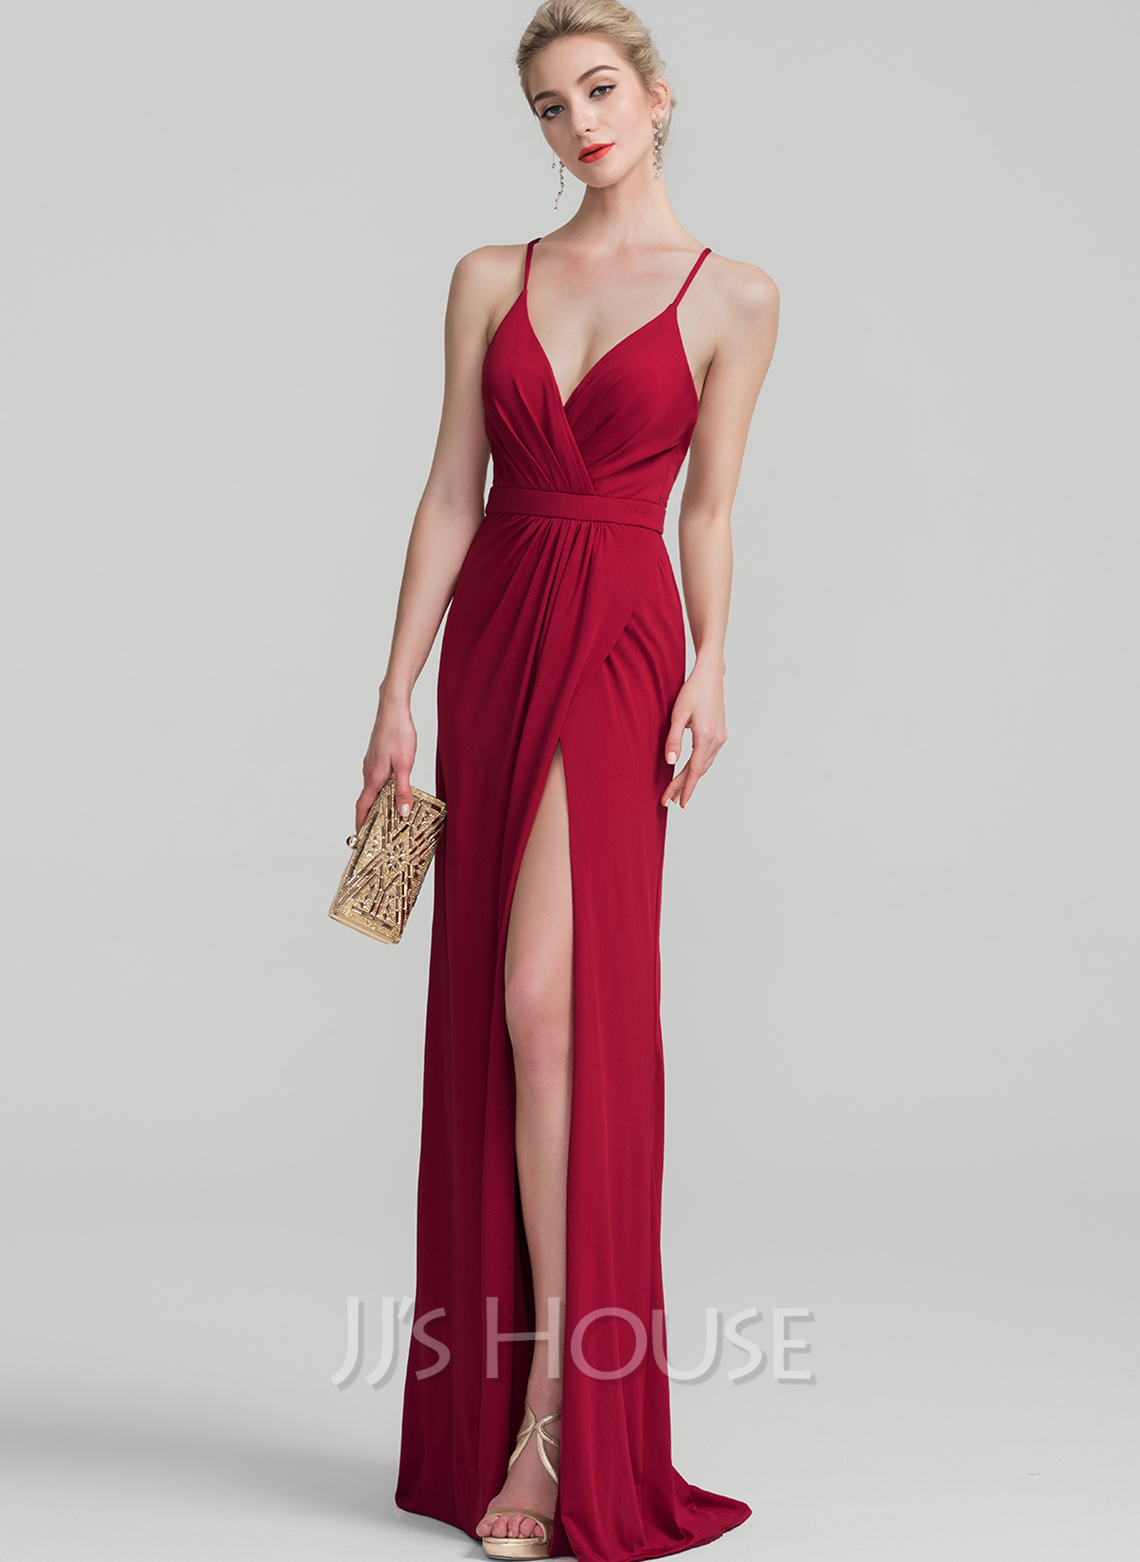 Jersey Evening Dress With Ruffle